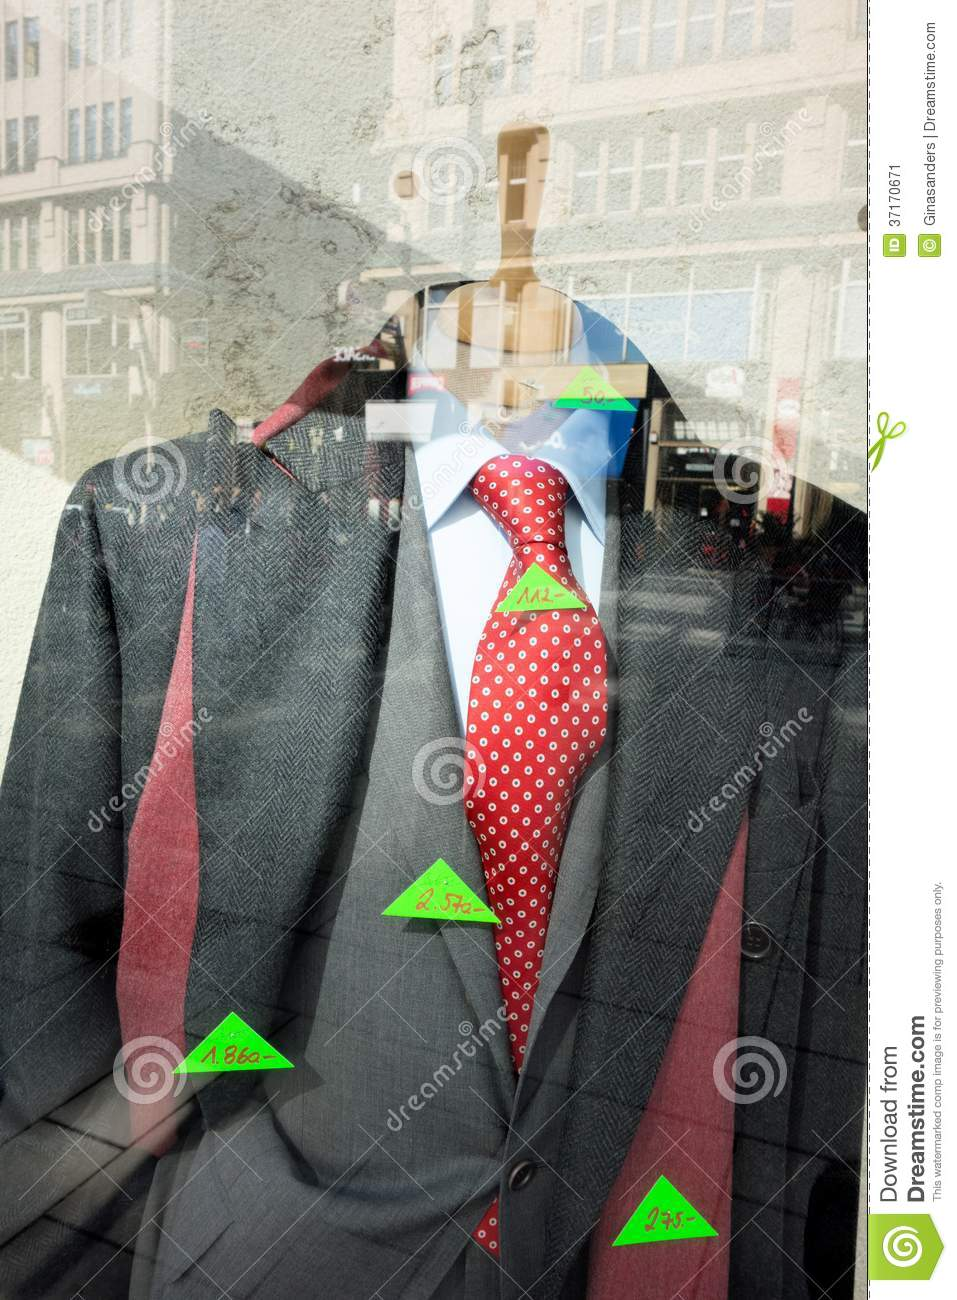 expensive-clothes-clothing-shop-window-gentlemen-s-outfitter-37170671